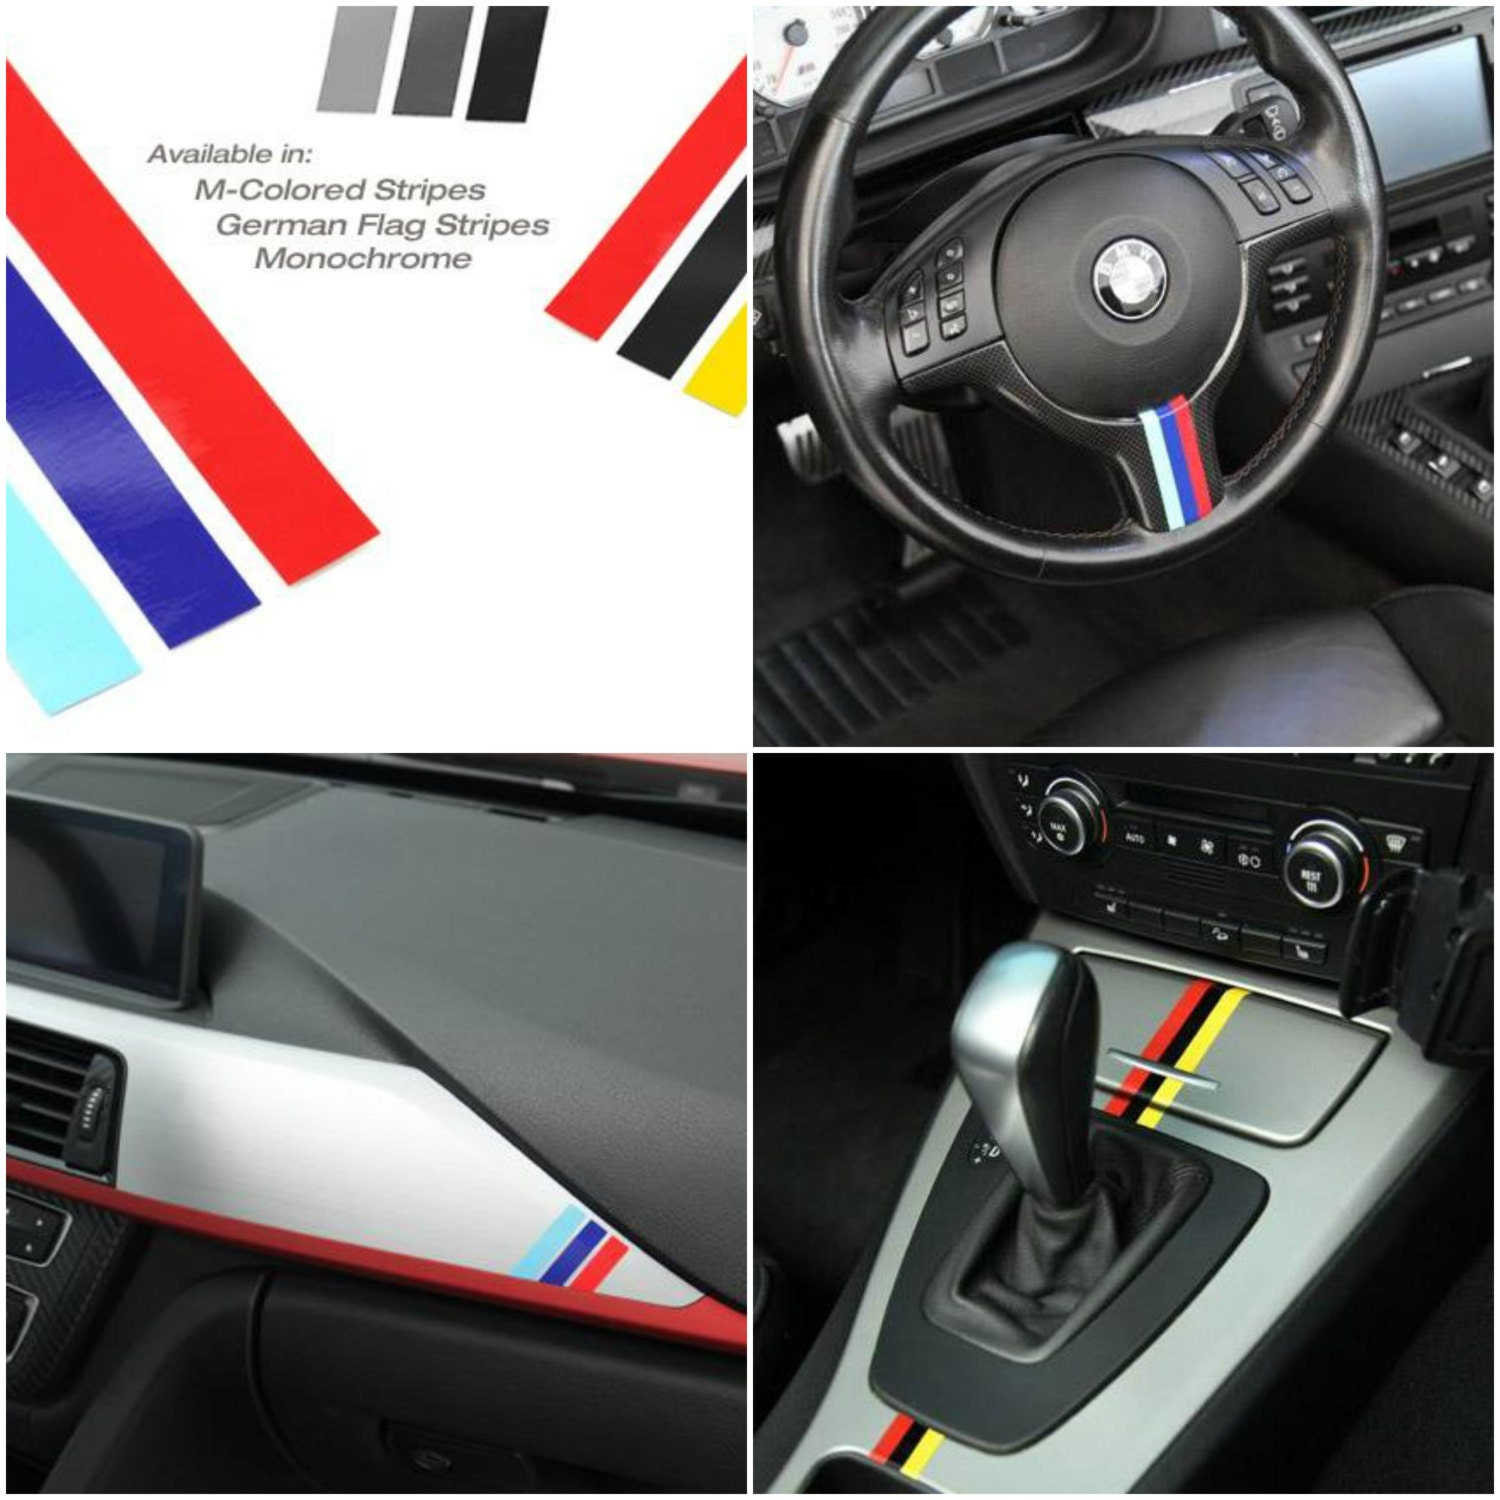 Bmw Z4 Interior Trim: BMW INTERIOR Dash Trim Steering Wheel Console M Colored